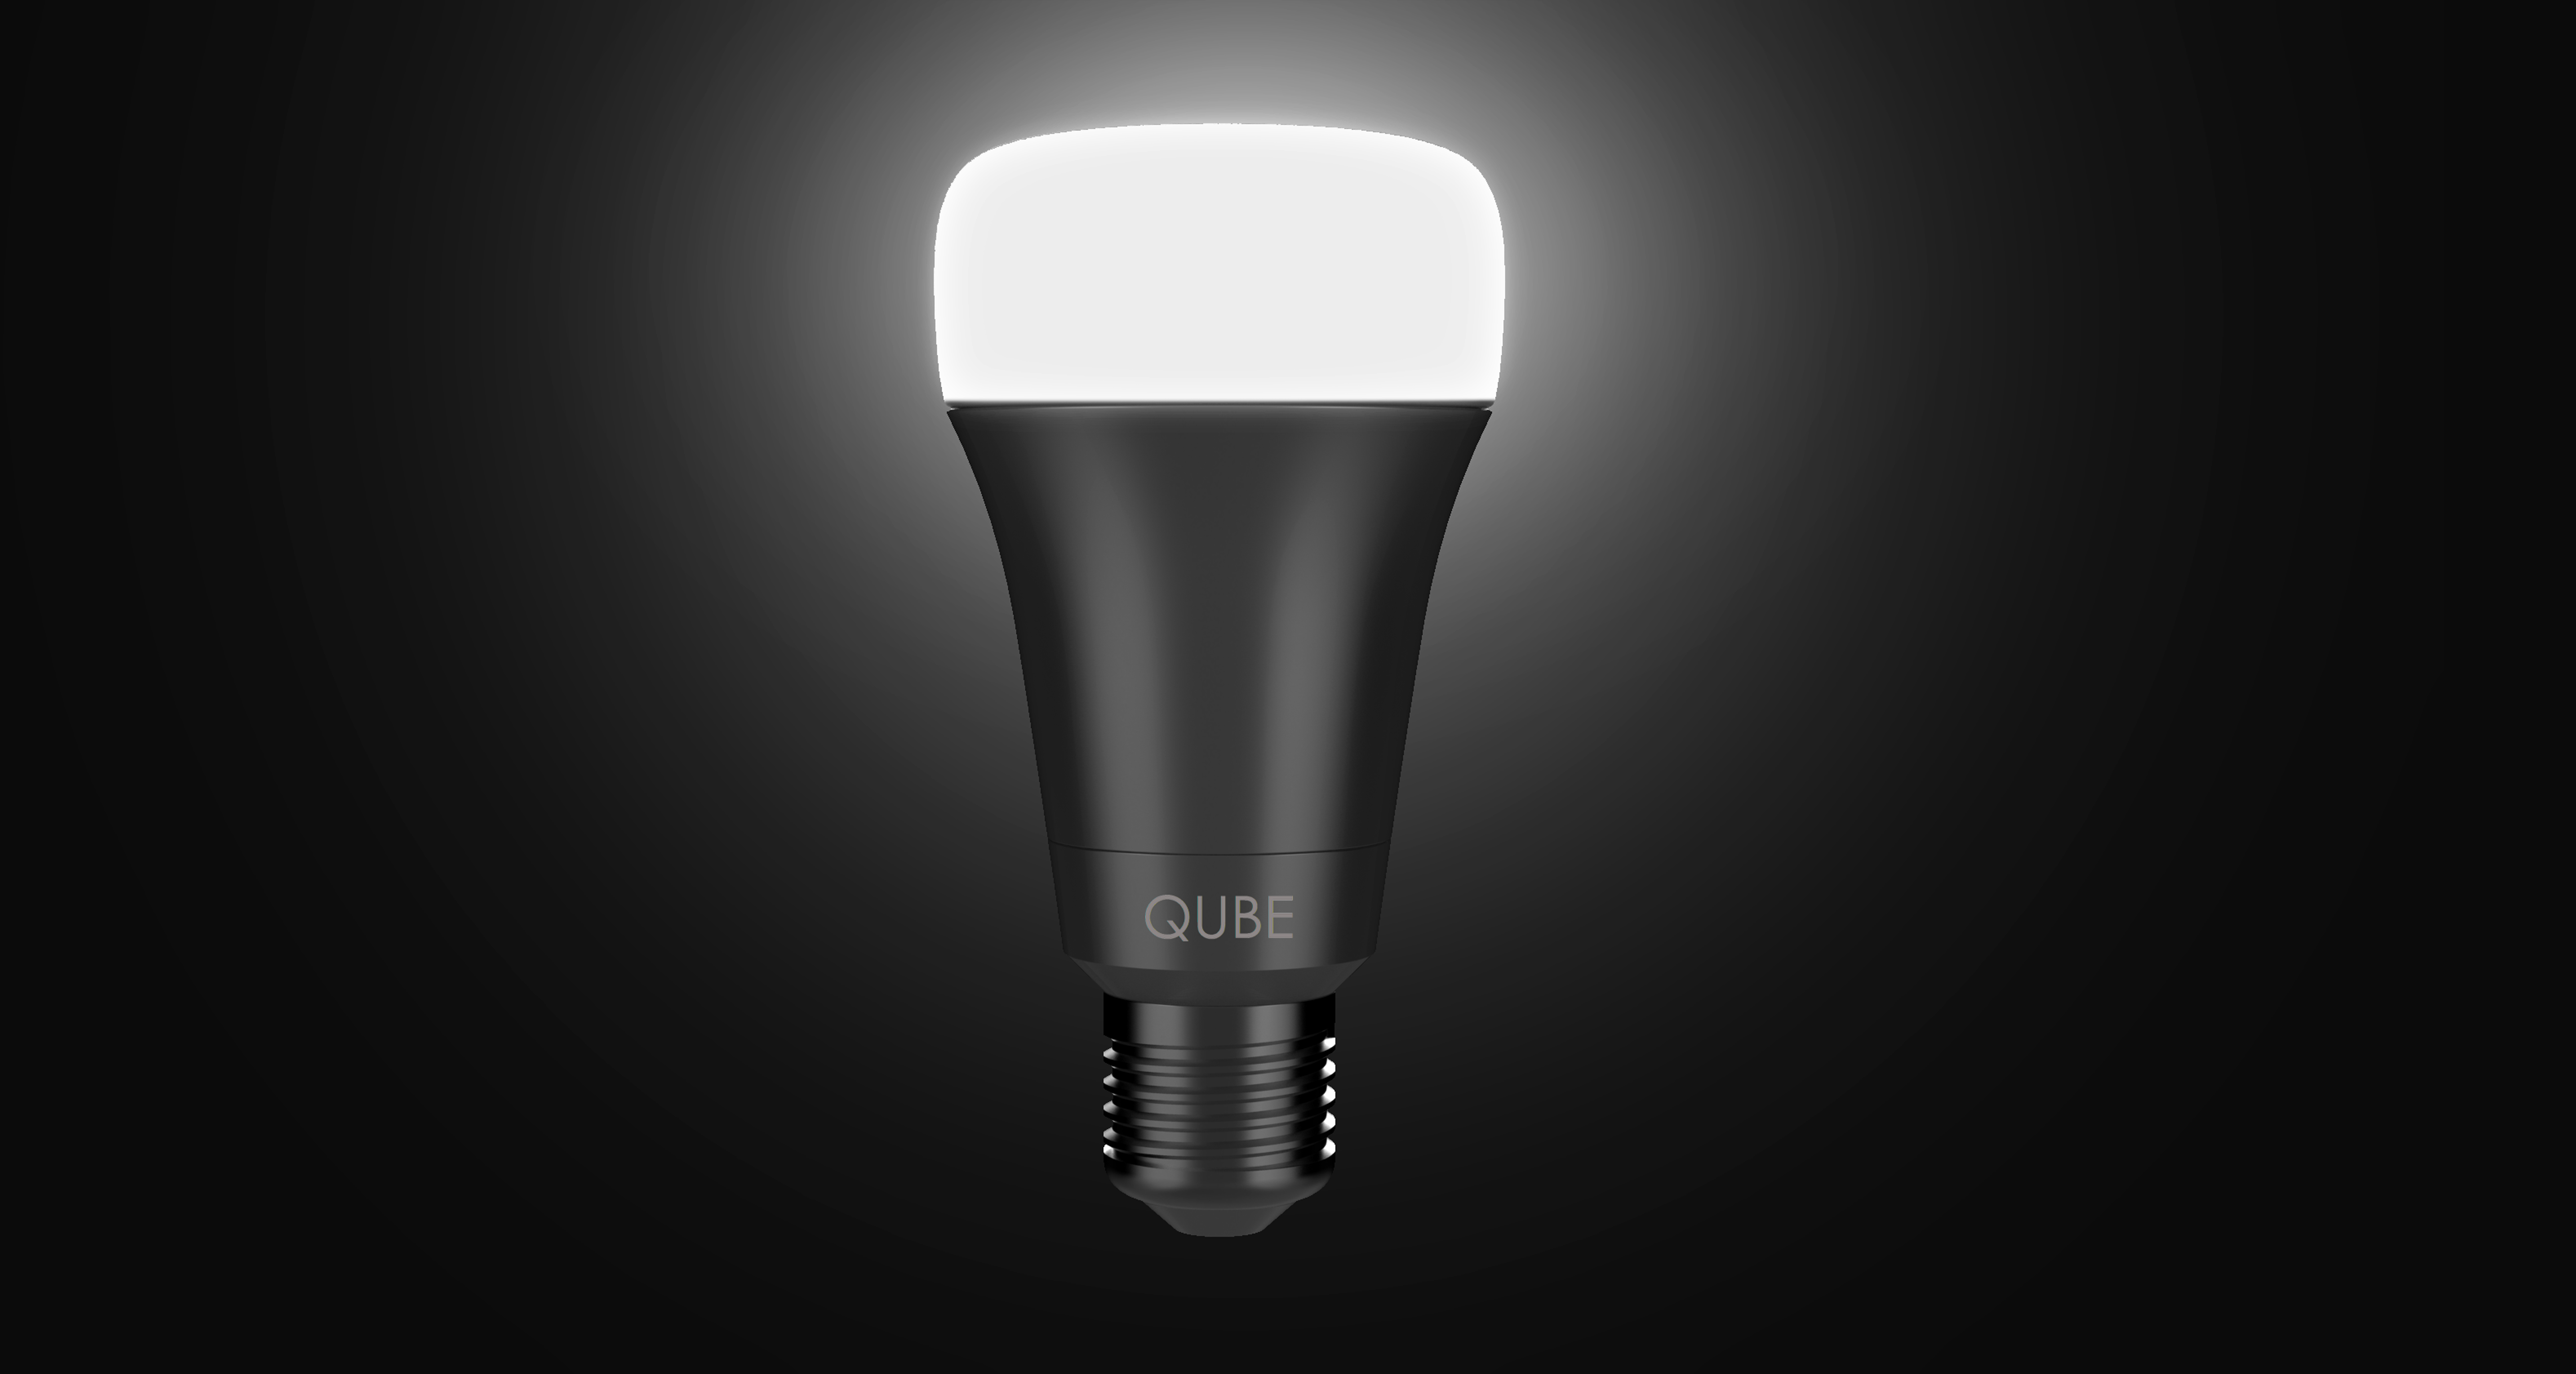 Qube Smart Bulb Heads To Indiegogo As World 39 S Most Affordable Smart Bulb